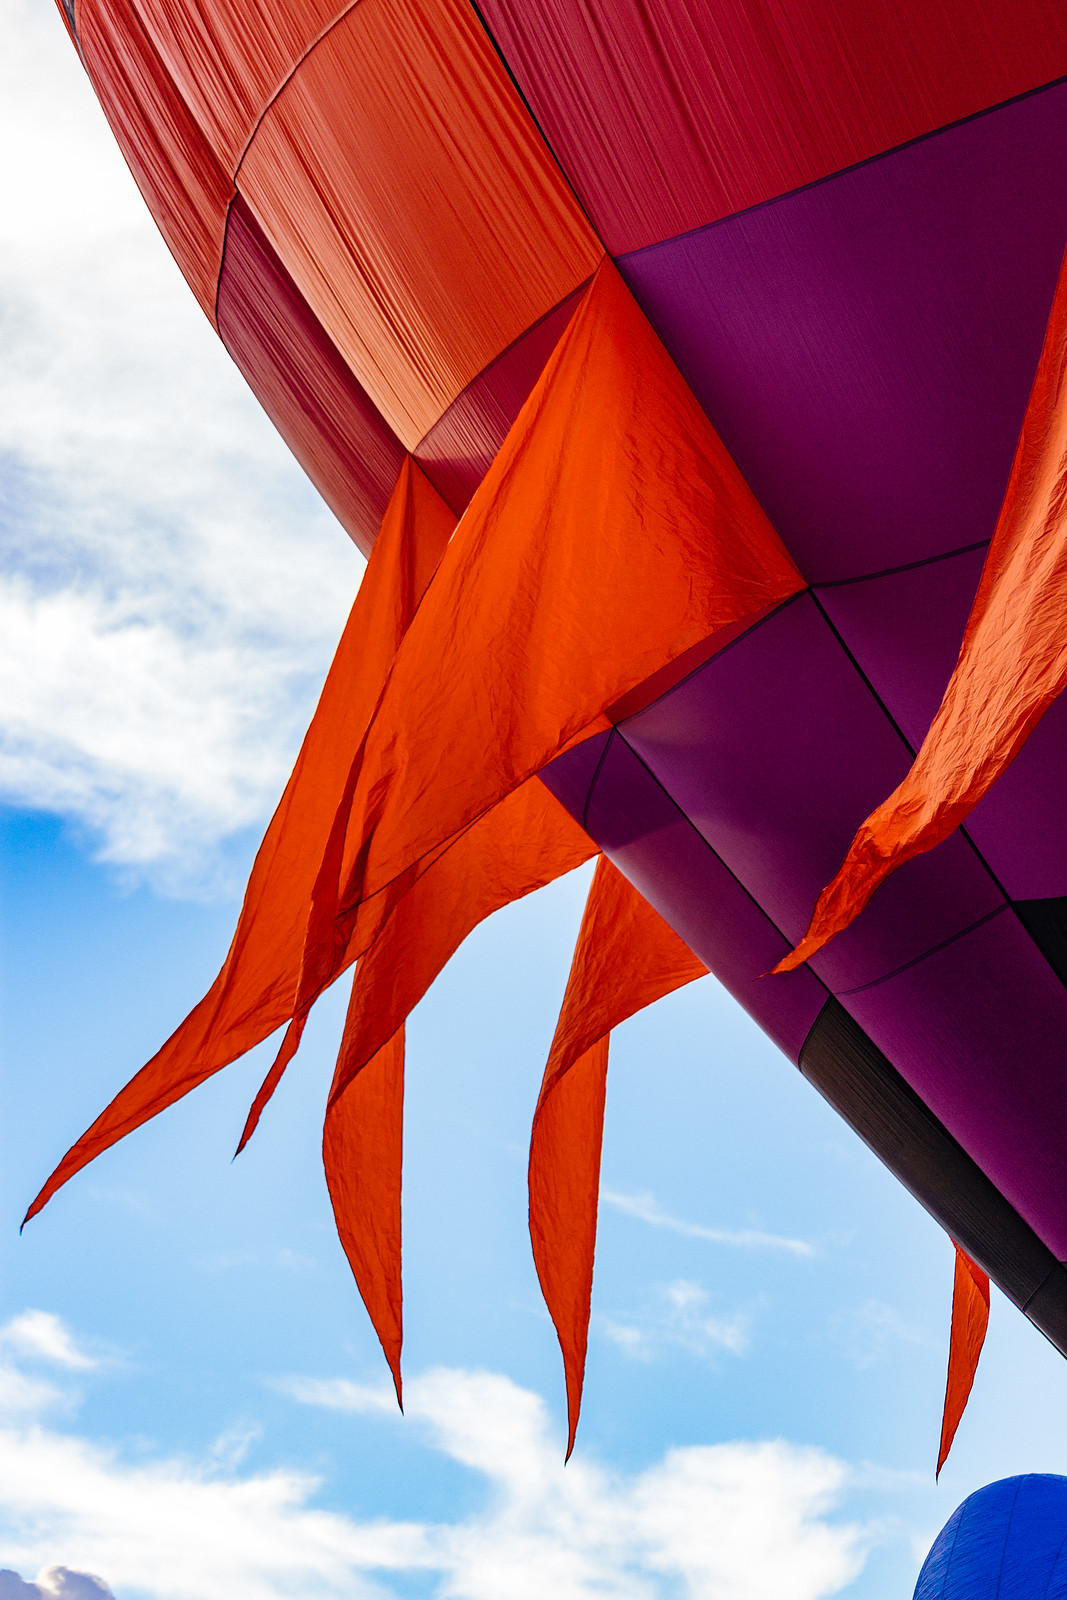 Red-and-purple balloon with fins at the Albuquerque International Balloon Fiesta